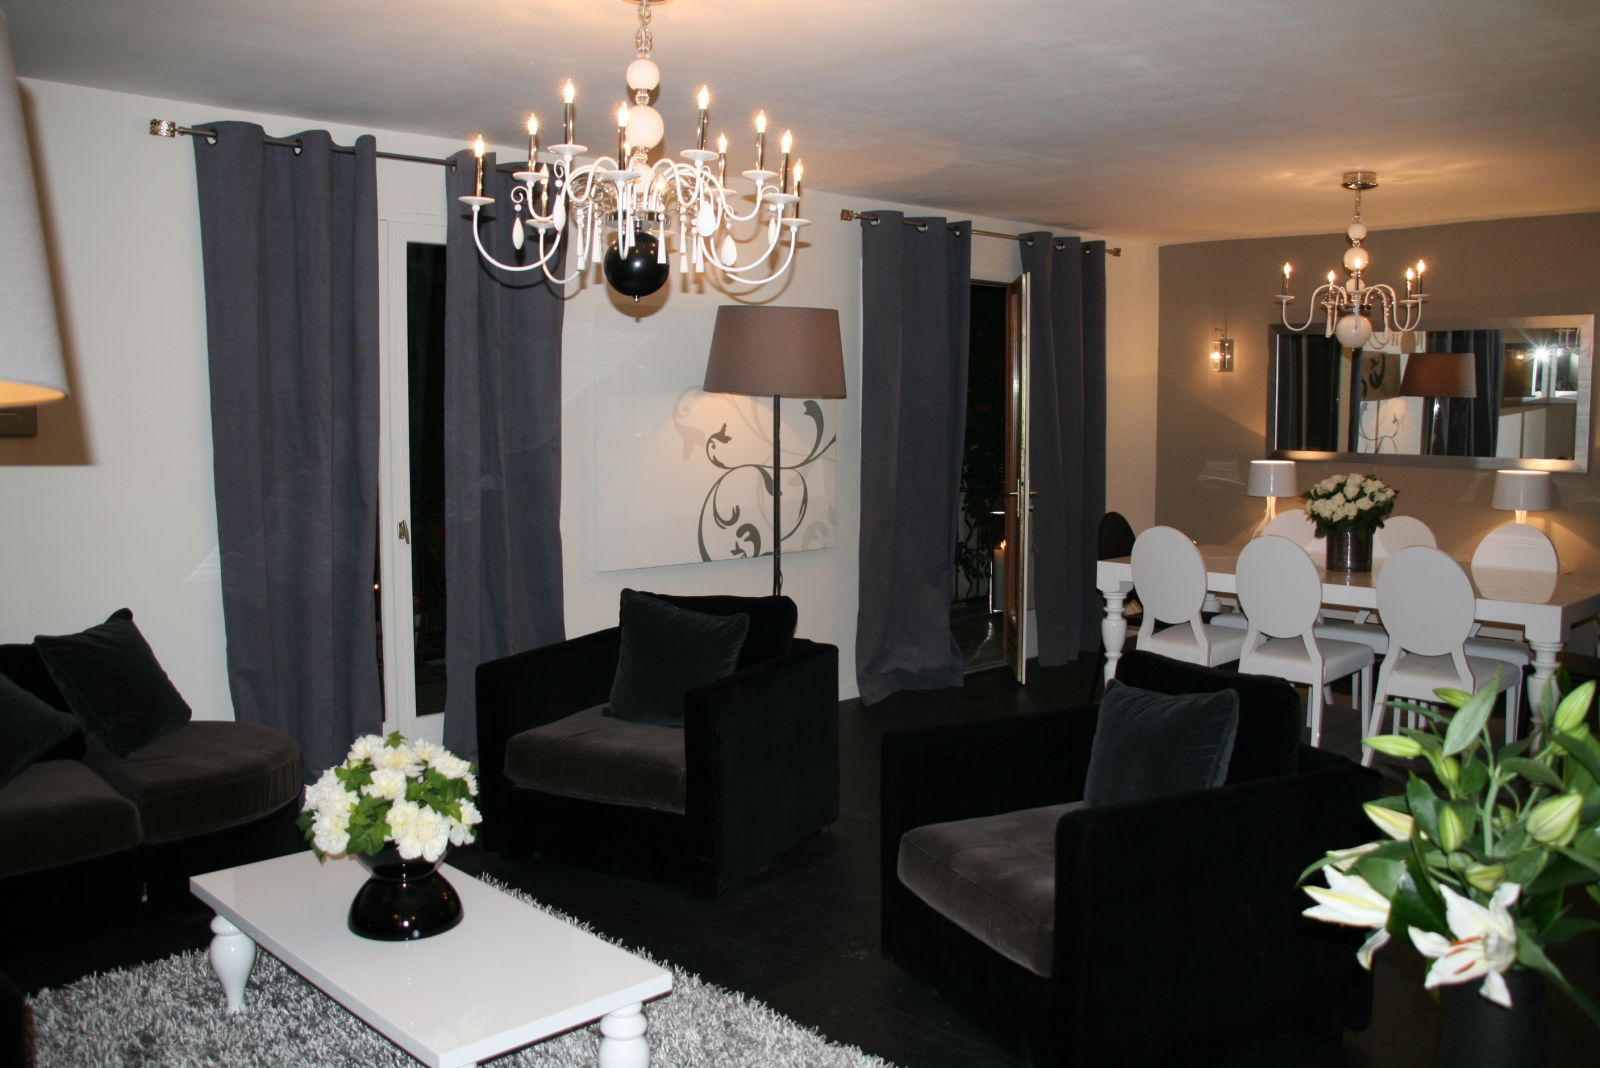 une ambiance romantique avec un luminaire chic evasiondeco. Black Bedroom Furniture Sets. Home Design Ideas